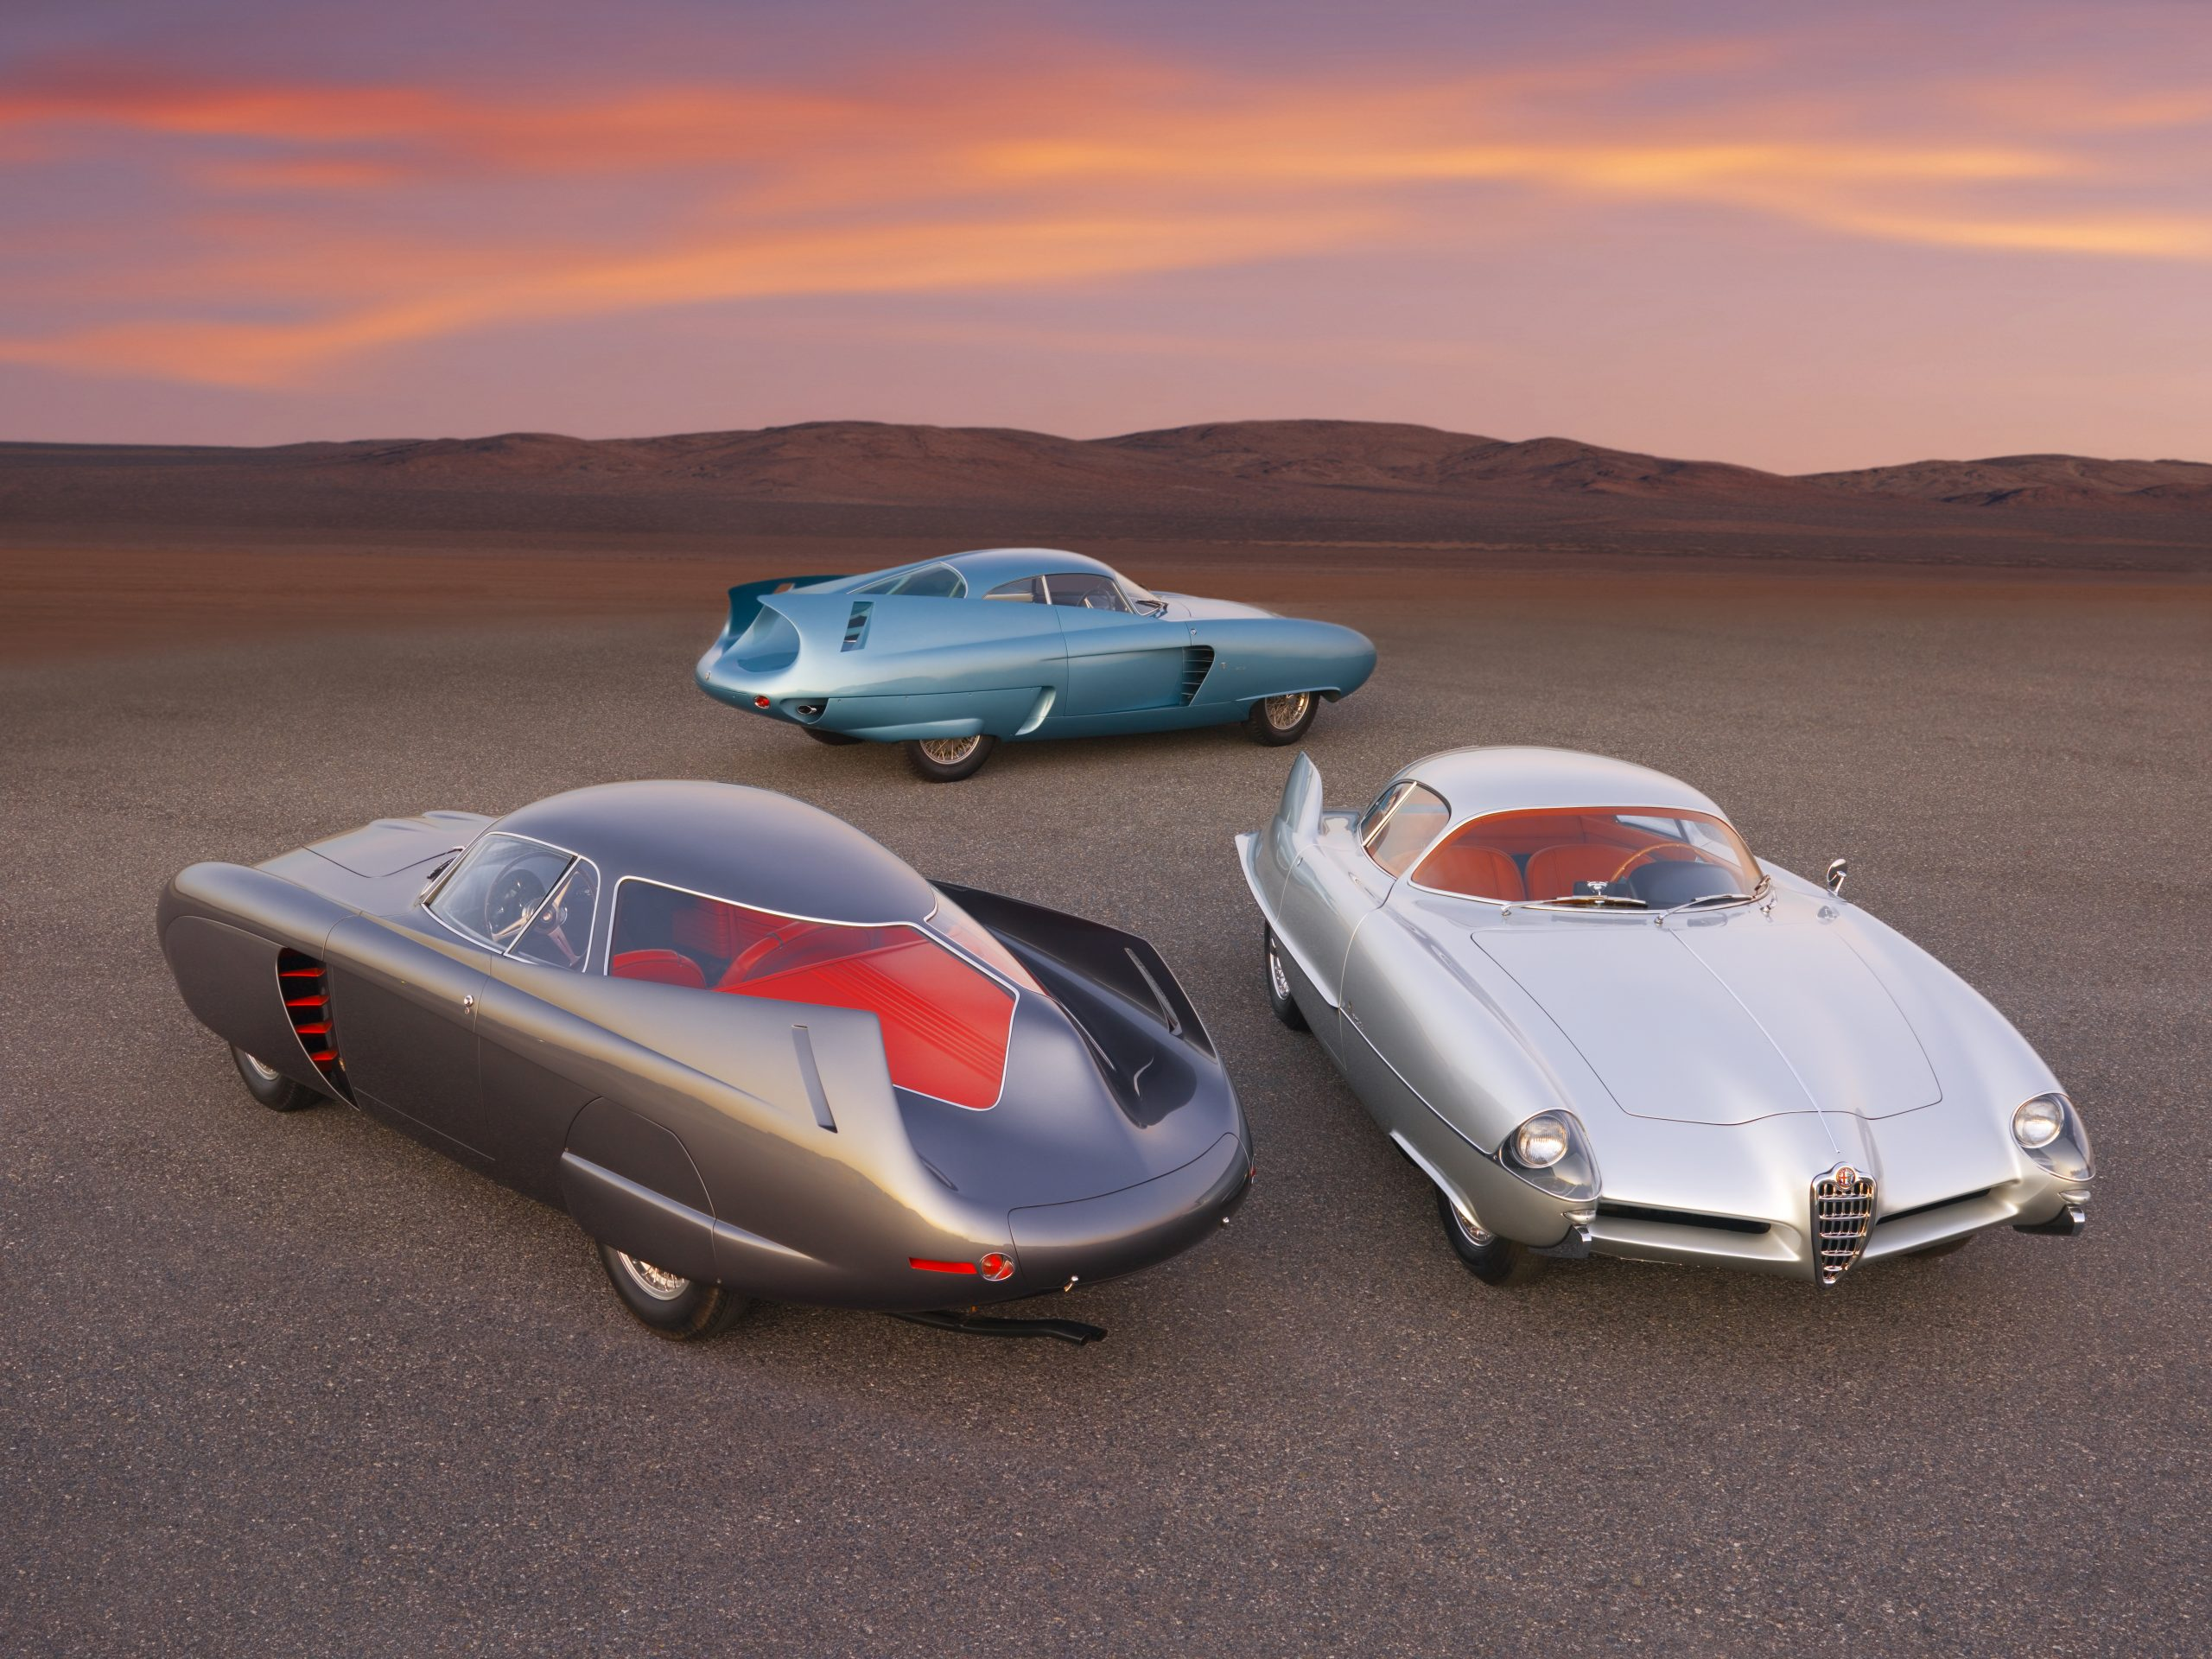 Bertone's trio of BAT Alfa Romeo concept cars could fetch £15m at auction